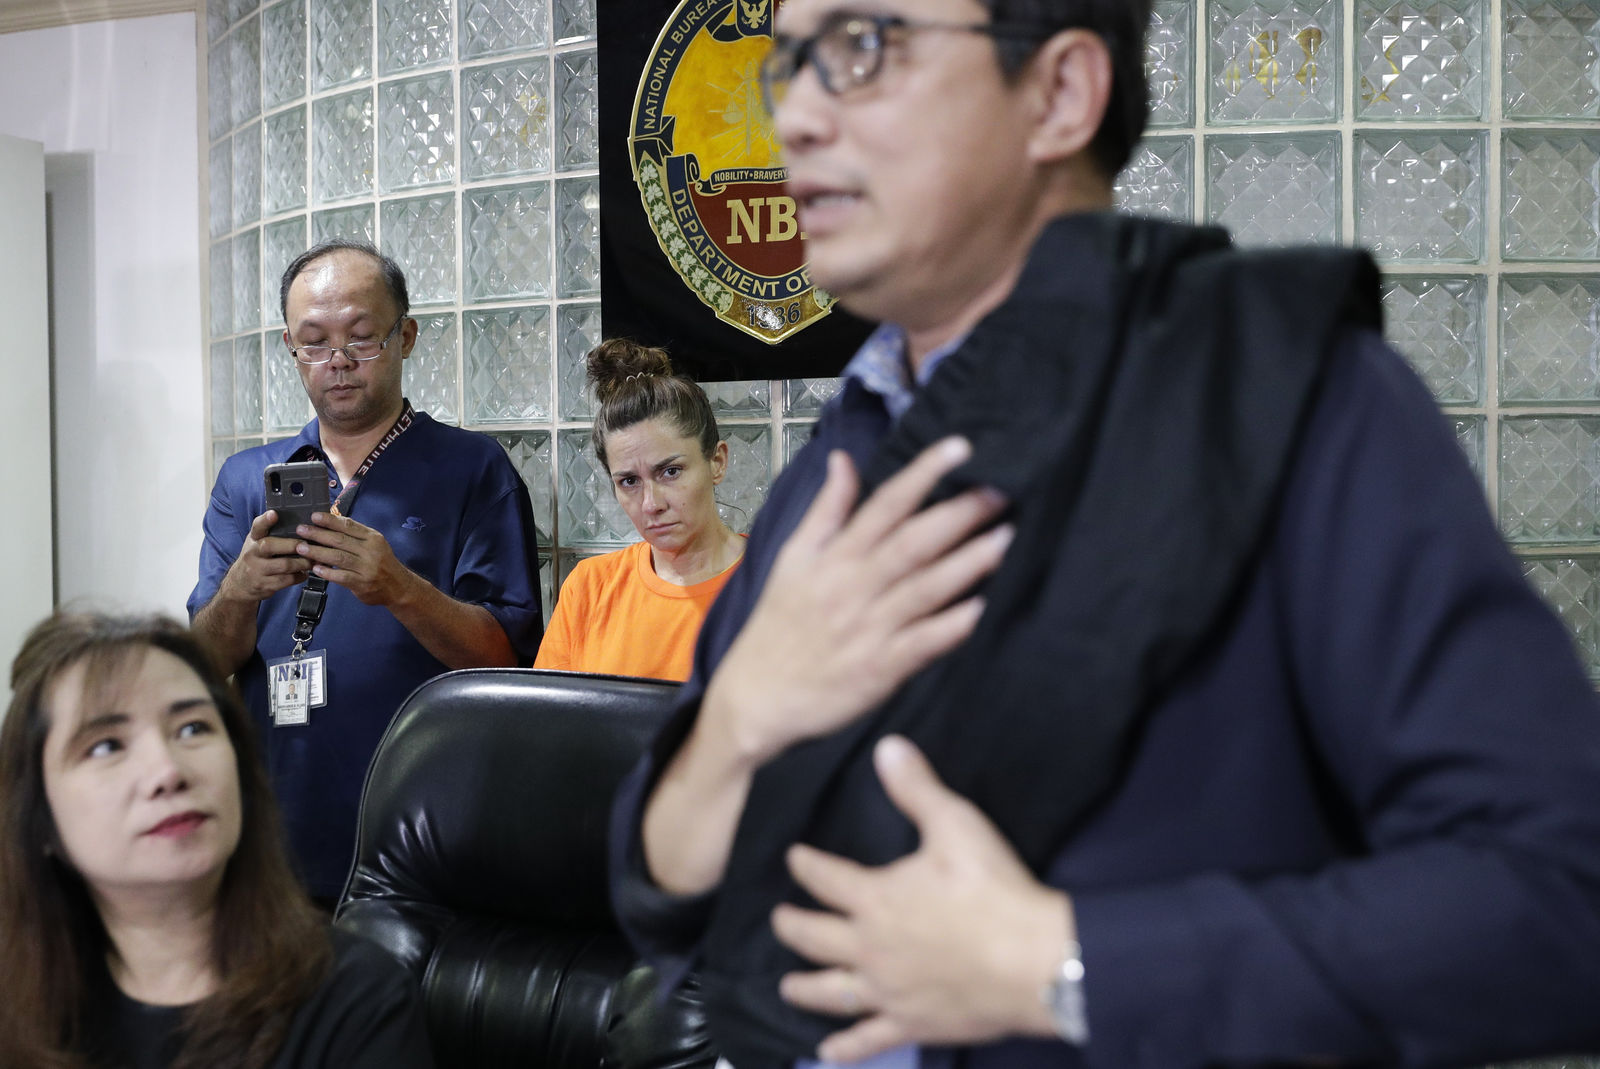 American Jennifer Erin Talbot, center rear, from Ohio looks as National Bureau of Investigation - International Airport Investigation Division chief Atty. Manny Dimaano shows a bag which Talbot allegedly used to carry a baby during a press conference in Manila, Philippines on Thursday, Sept. 5, 2019. (AP Photo/Aaron Favila)